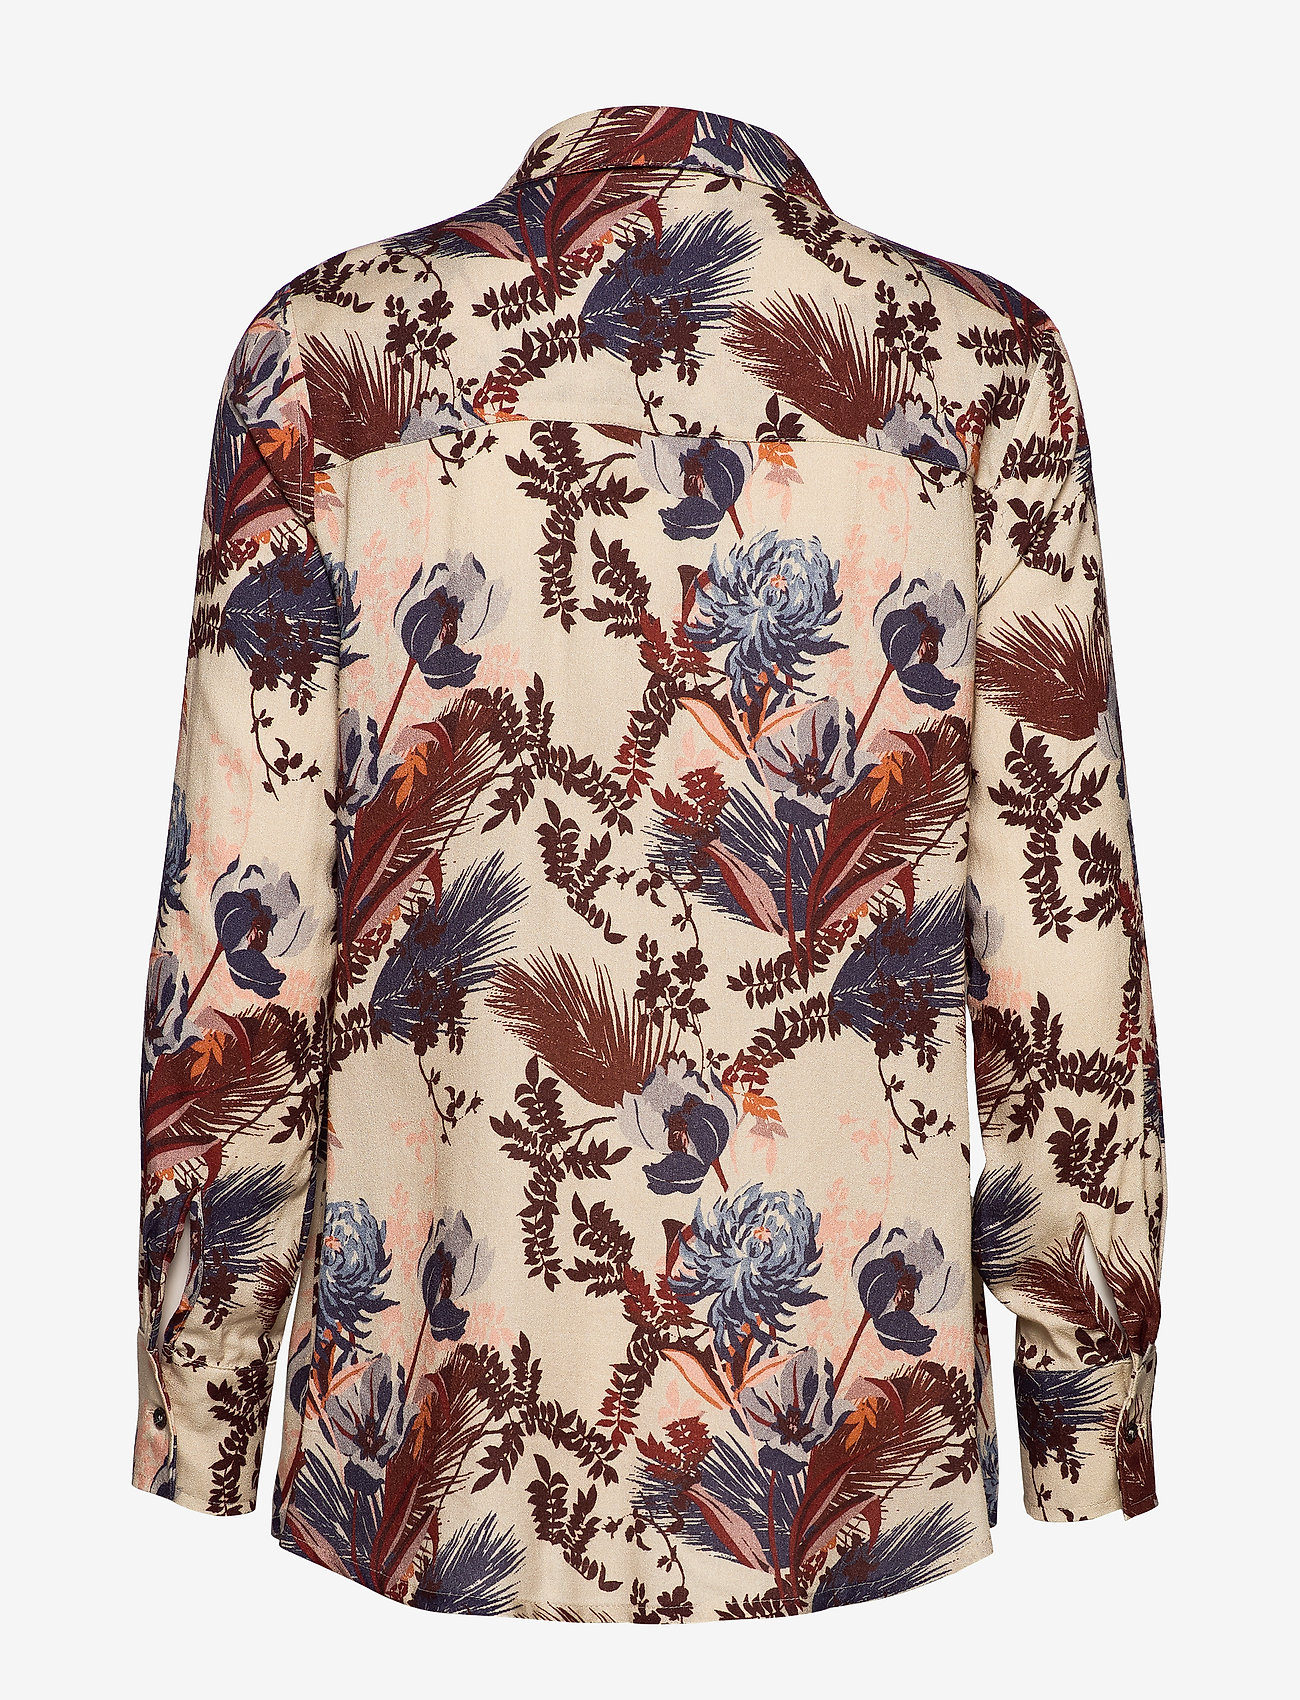 Kelly Beaux Shirt (Wild Plum Flower) - MOS MOSH S6lrLe